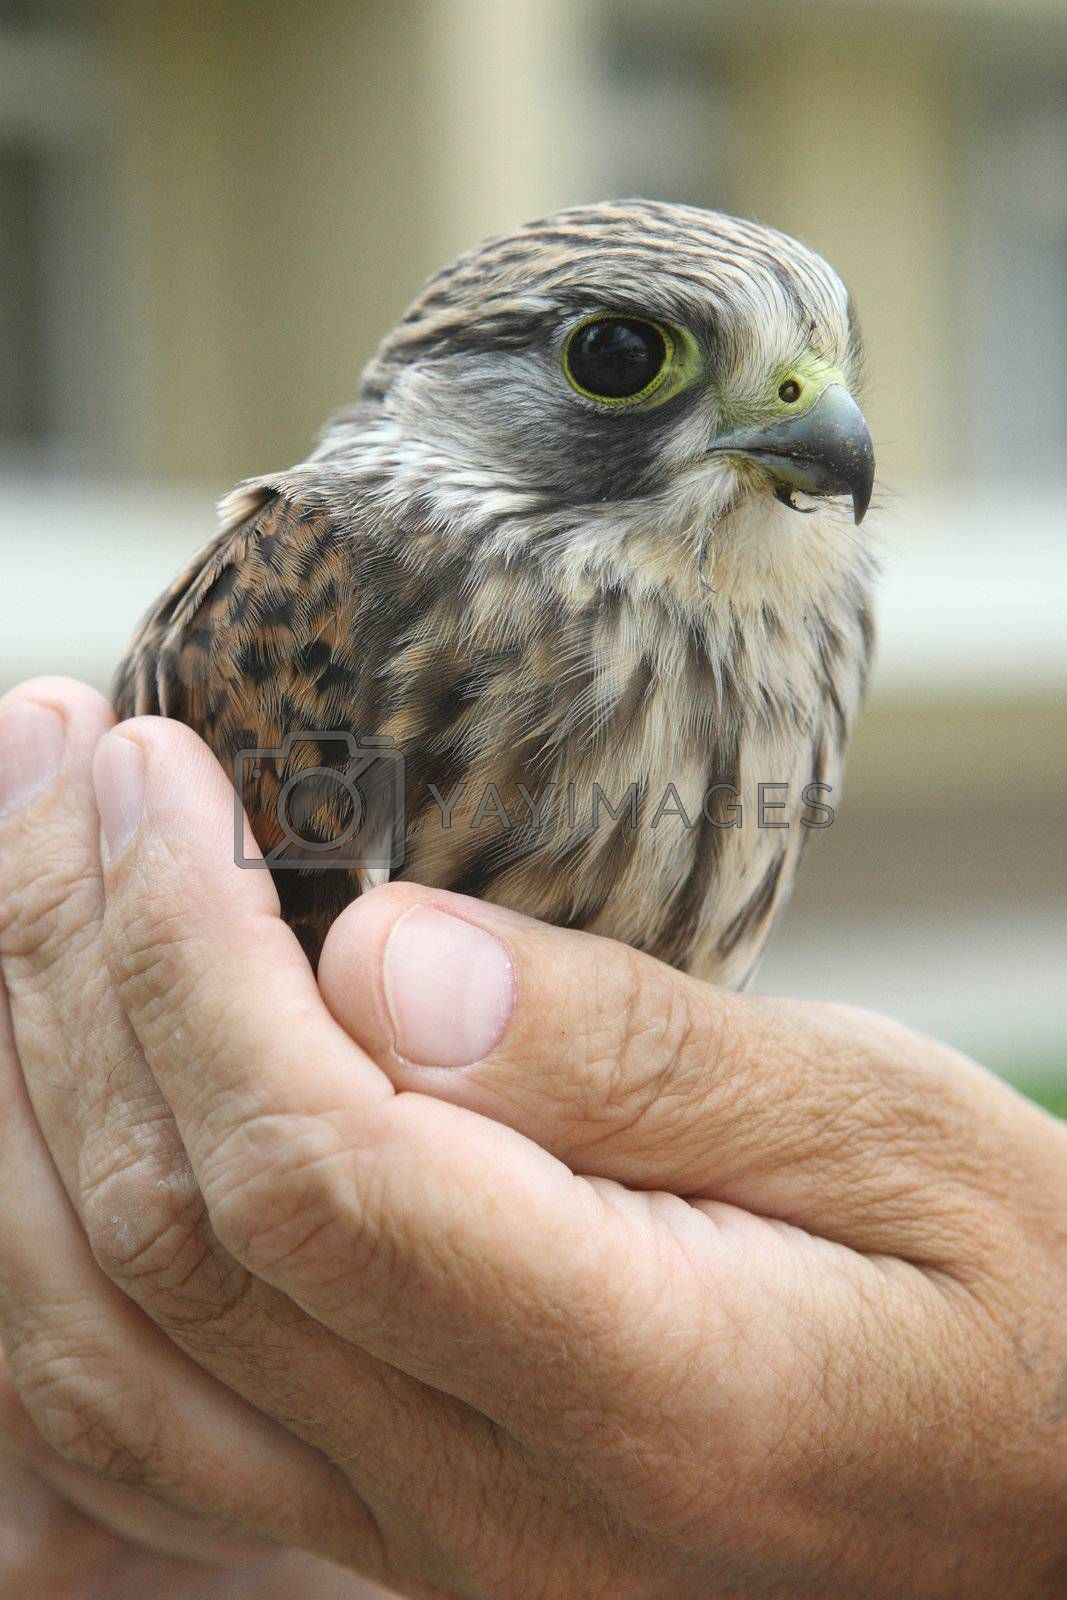 nestling of falcon is a kestrel (Falco tinnunculus) widely widespread and very useful bird